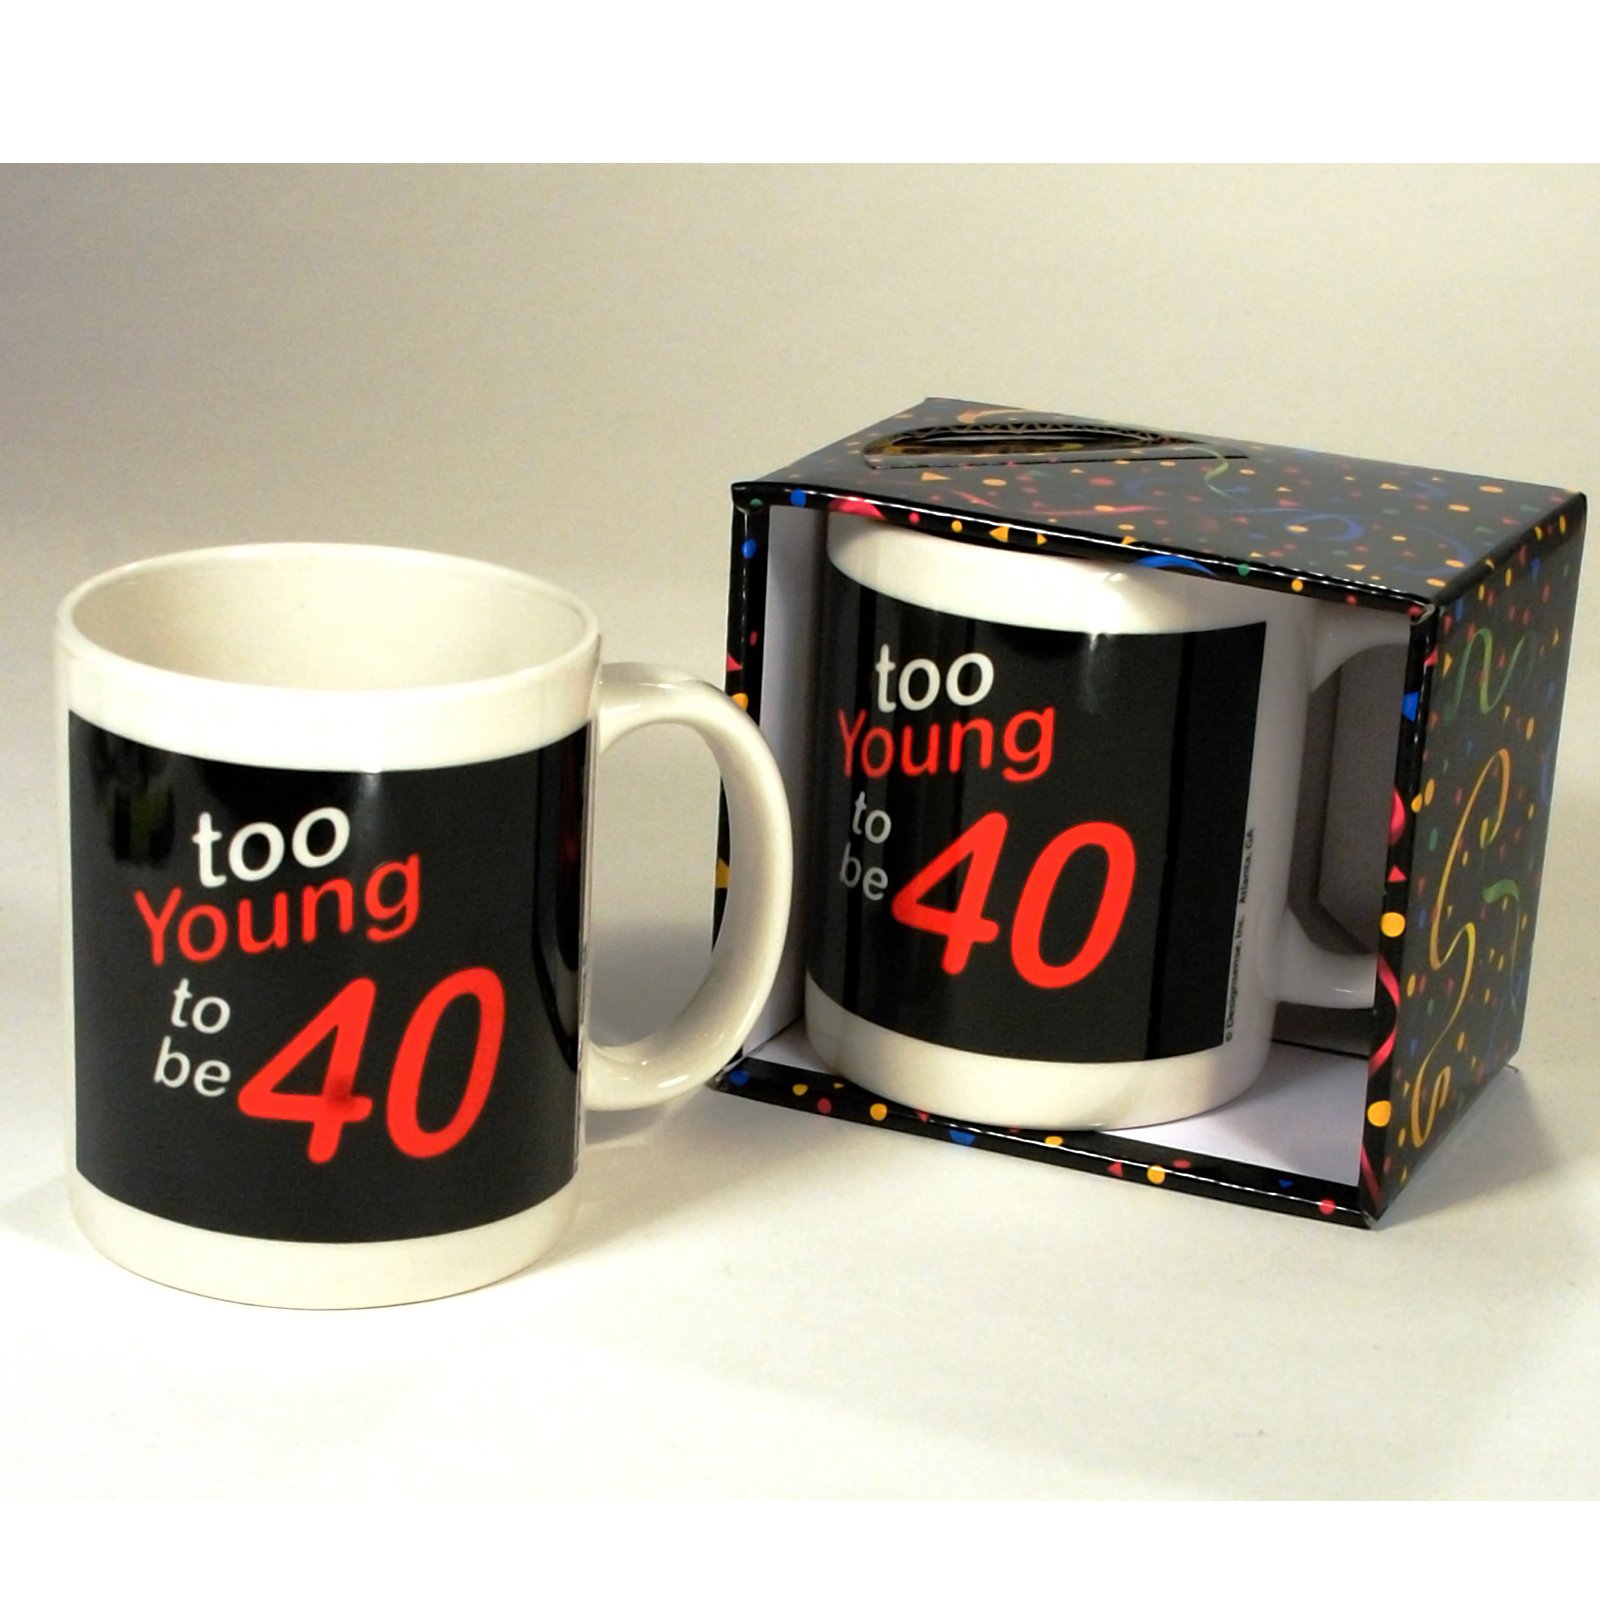 Too Young to be 40 Mug